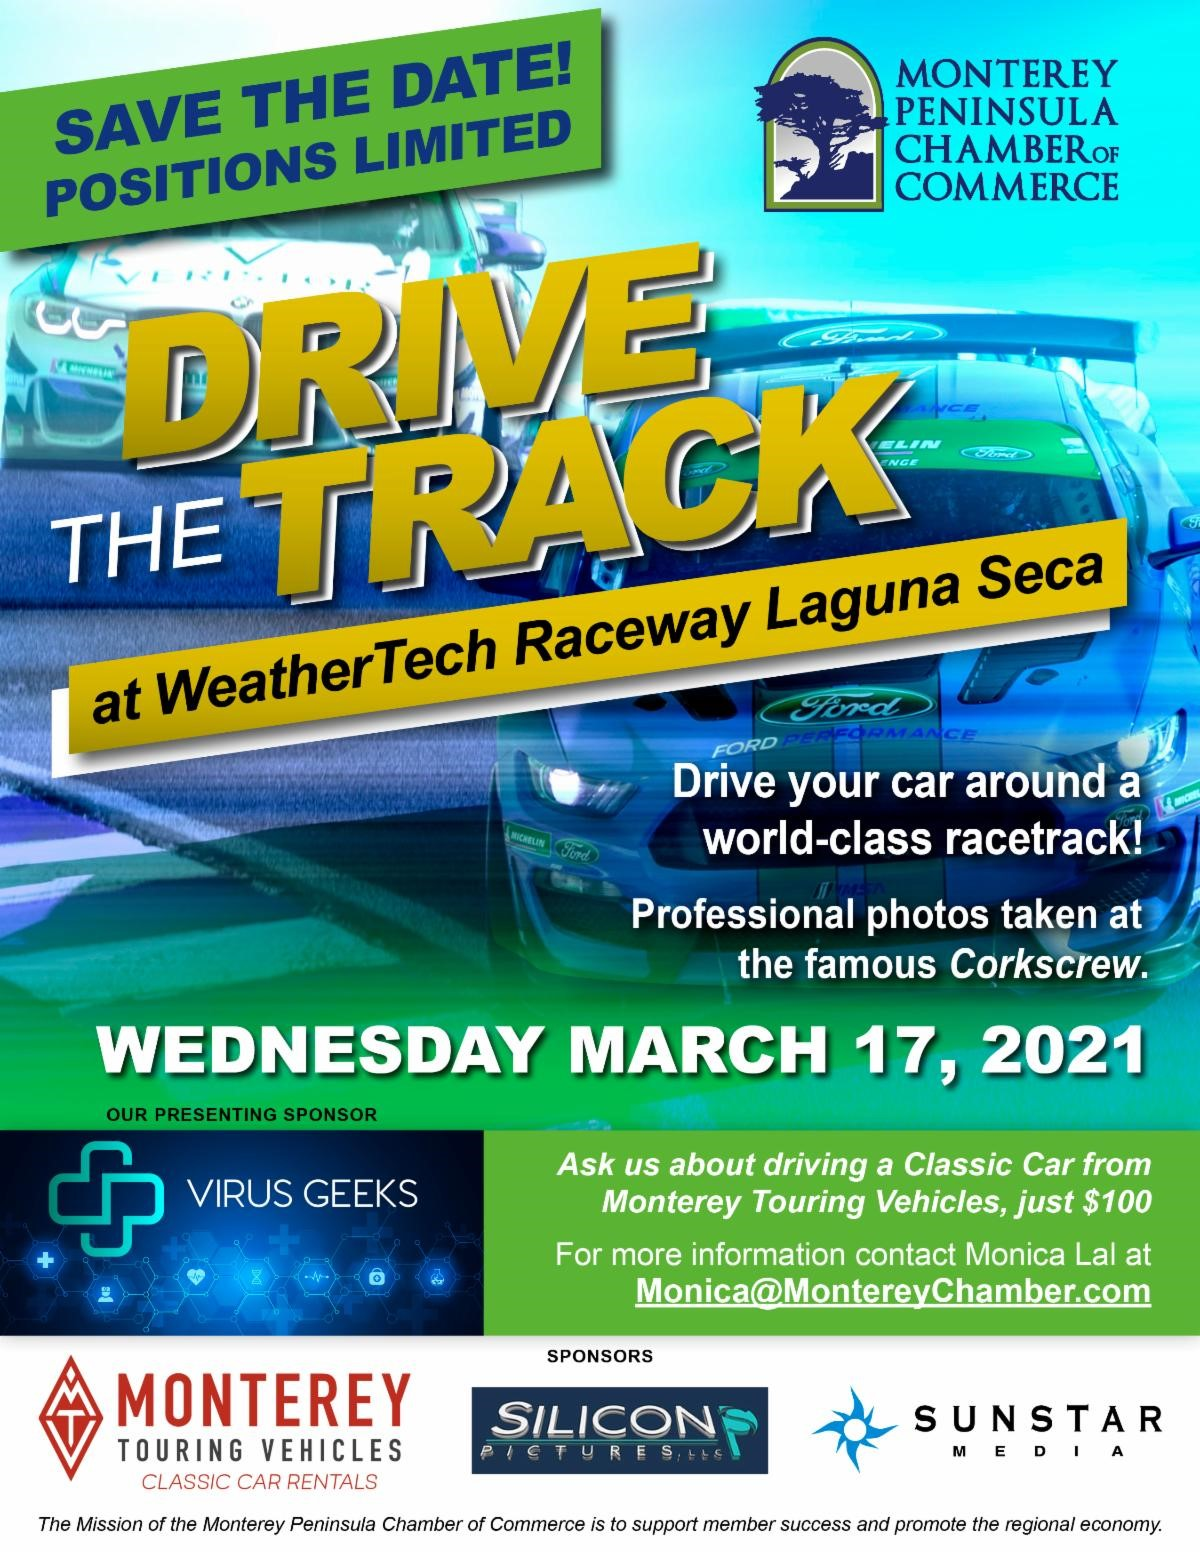 Drive the Track flyer - 3-17-21